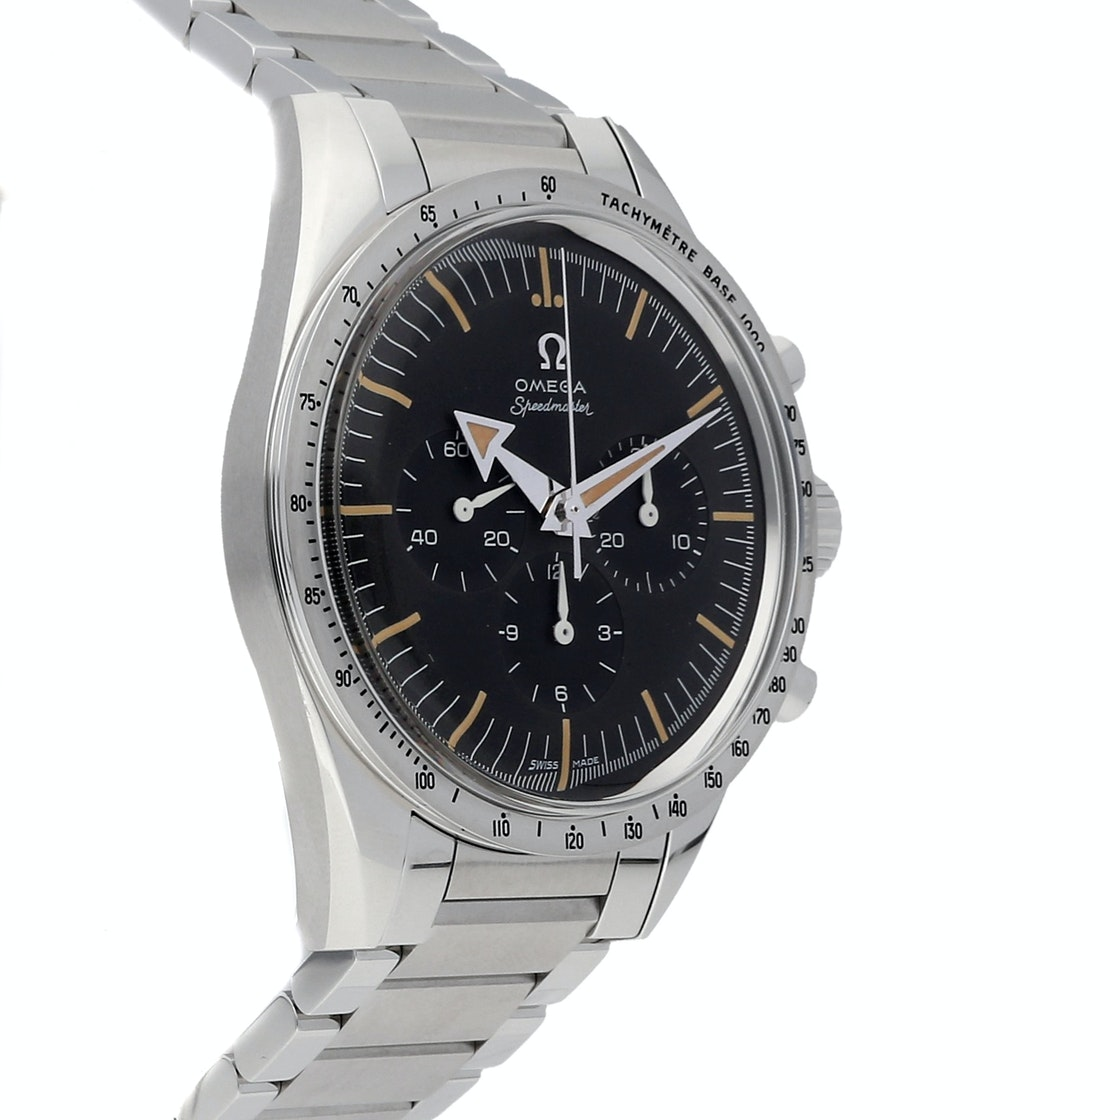 Omega Speedmaster '57 Chrono The 1957 Trilogy Limited Edition 311.10.39.30.01.001